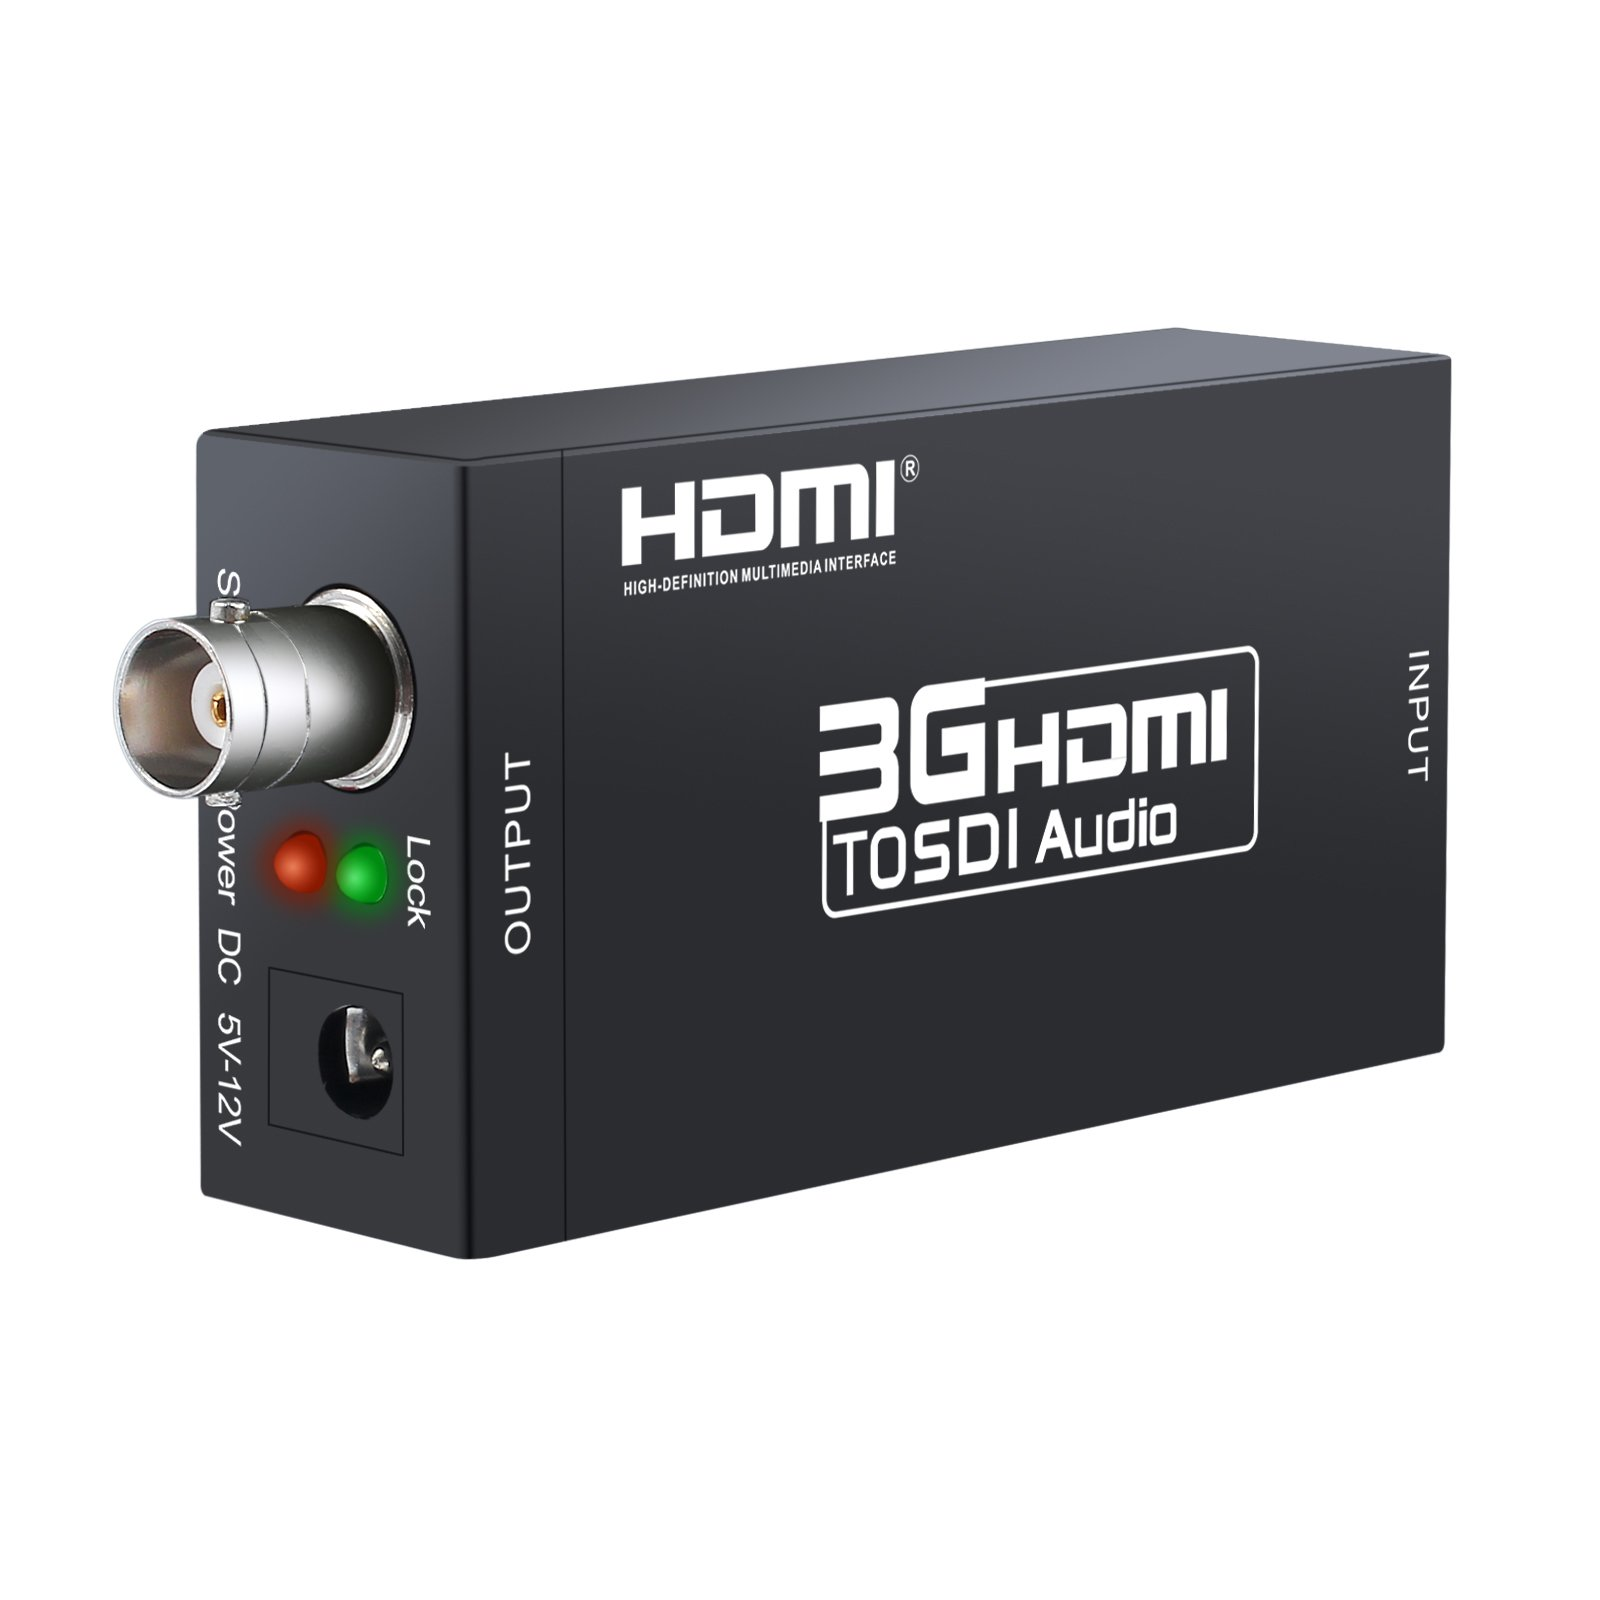 eSynic HDMI to SDI Converter Adapter HDMI SDI Adapter Full HD 1080P Audio Converter Support SDI/HD-SDI/3G-SDI Signals for Camera Home Theater